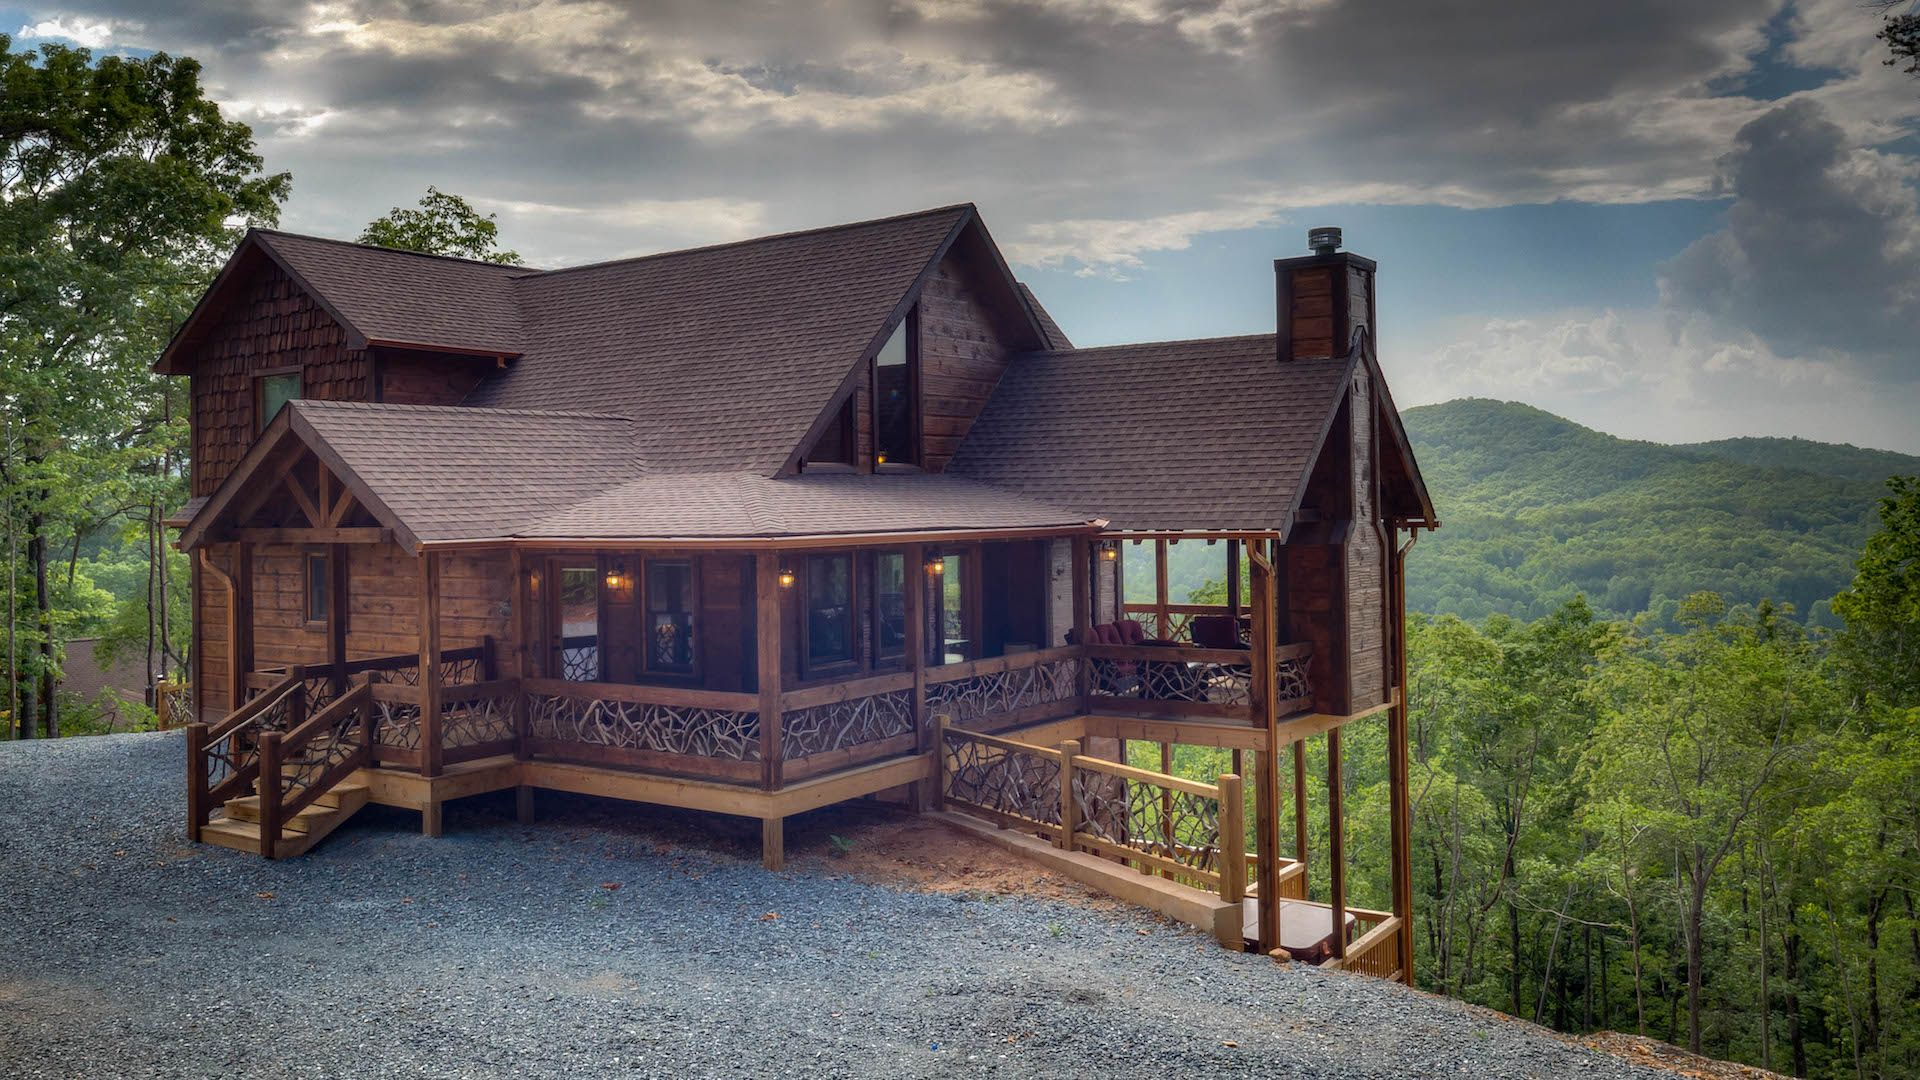 view pin ridge georgia cabins rentals cabin interior blue of wilderness sassafras rentalsblue ellijay in